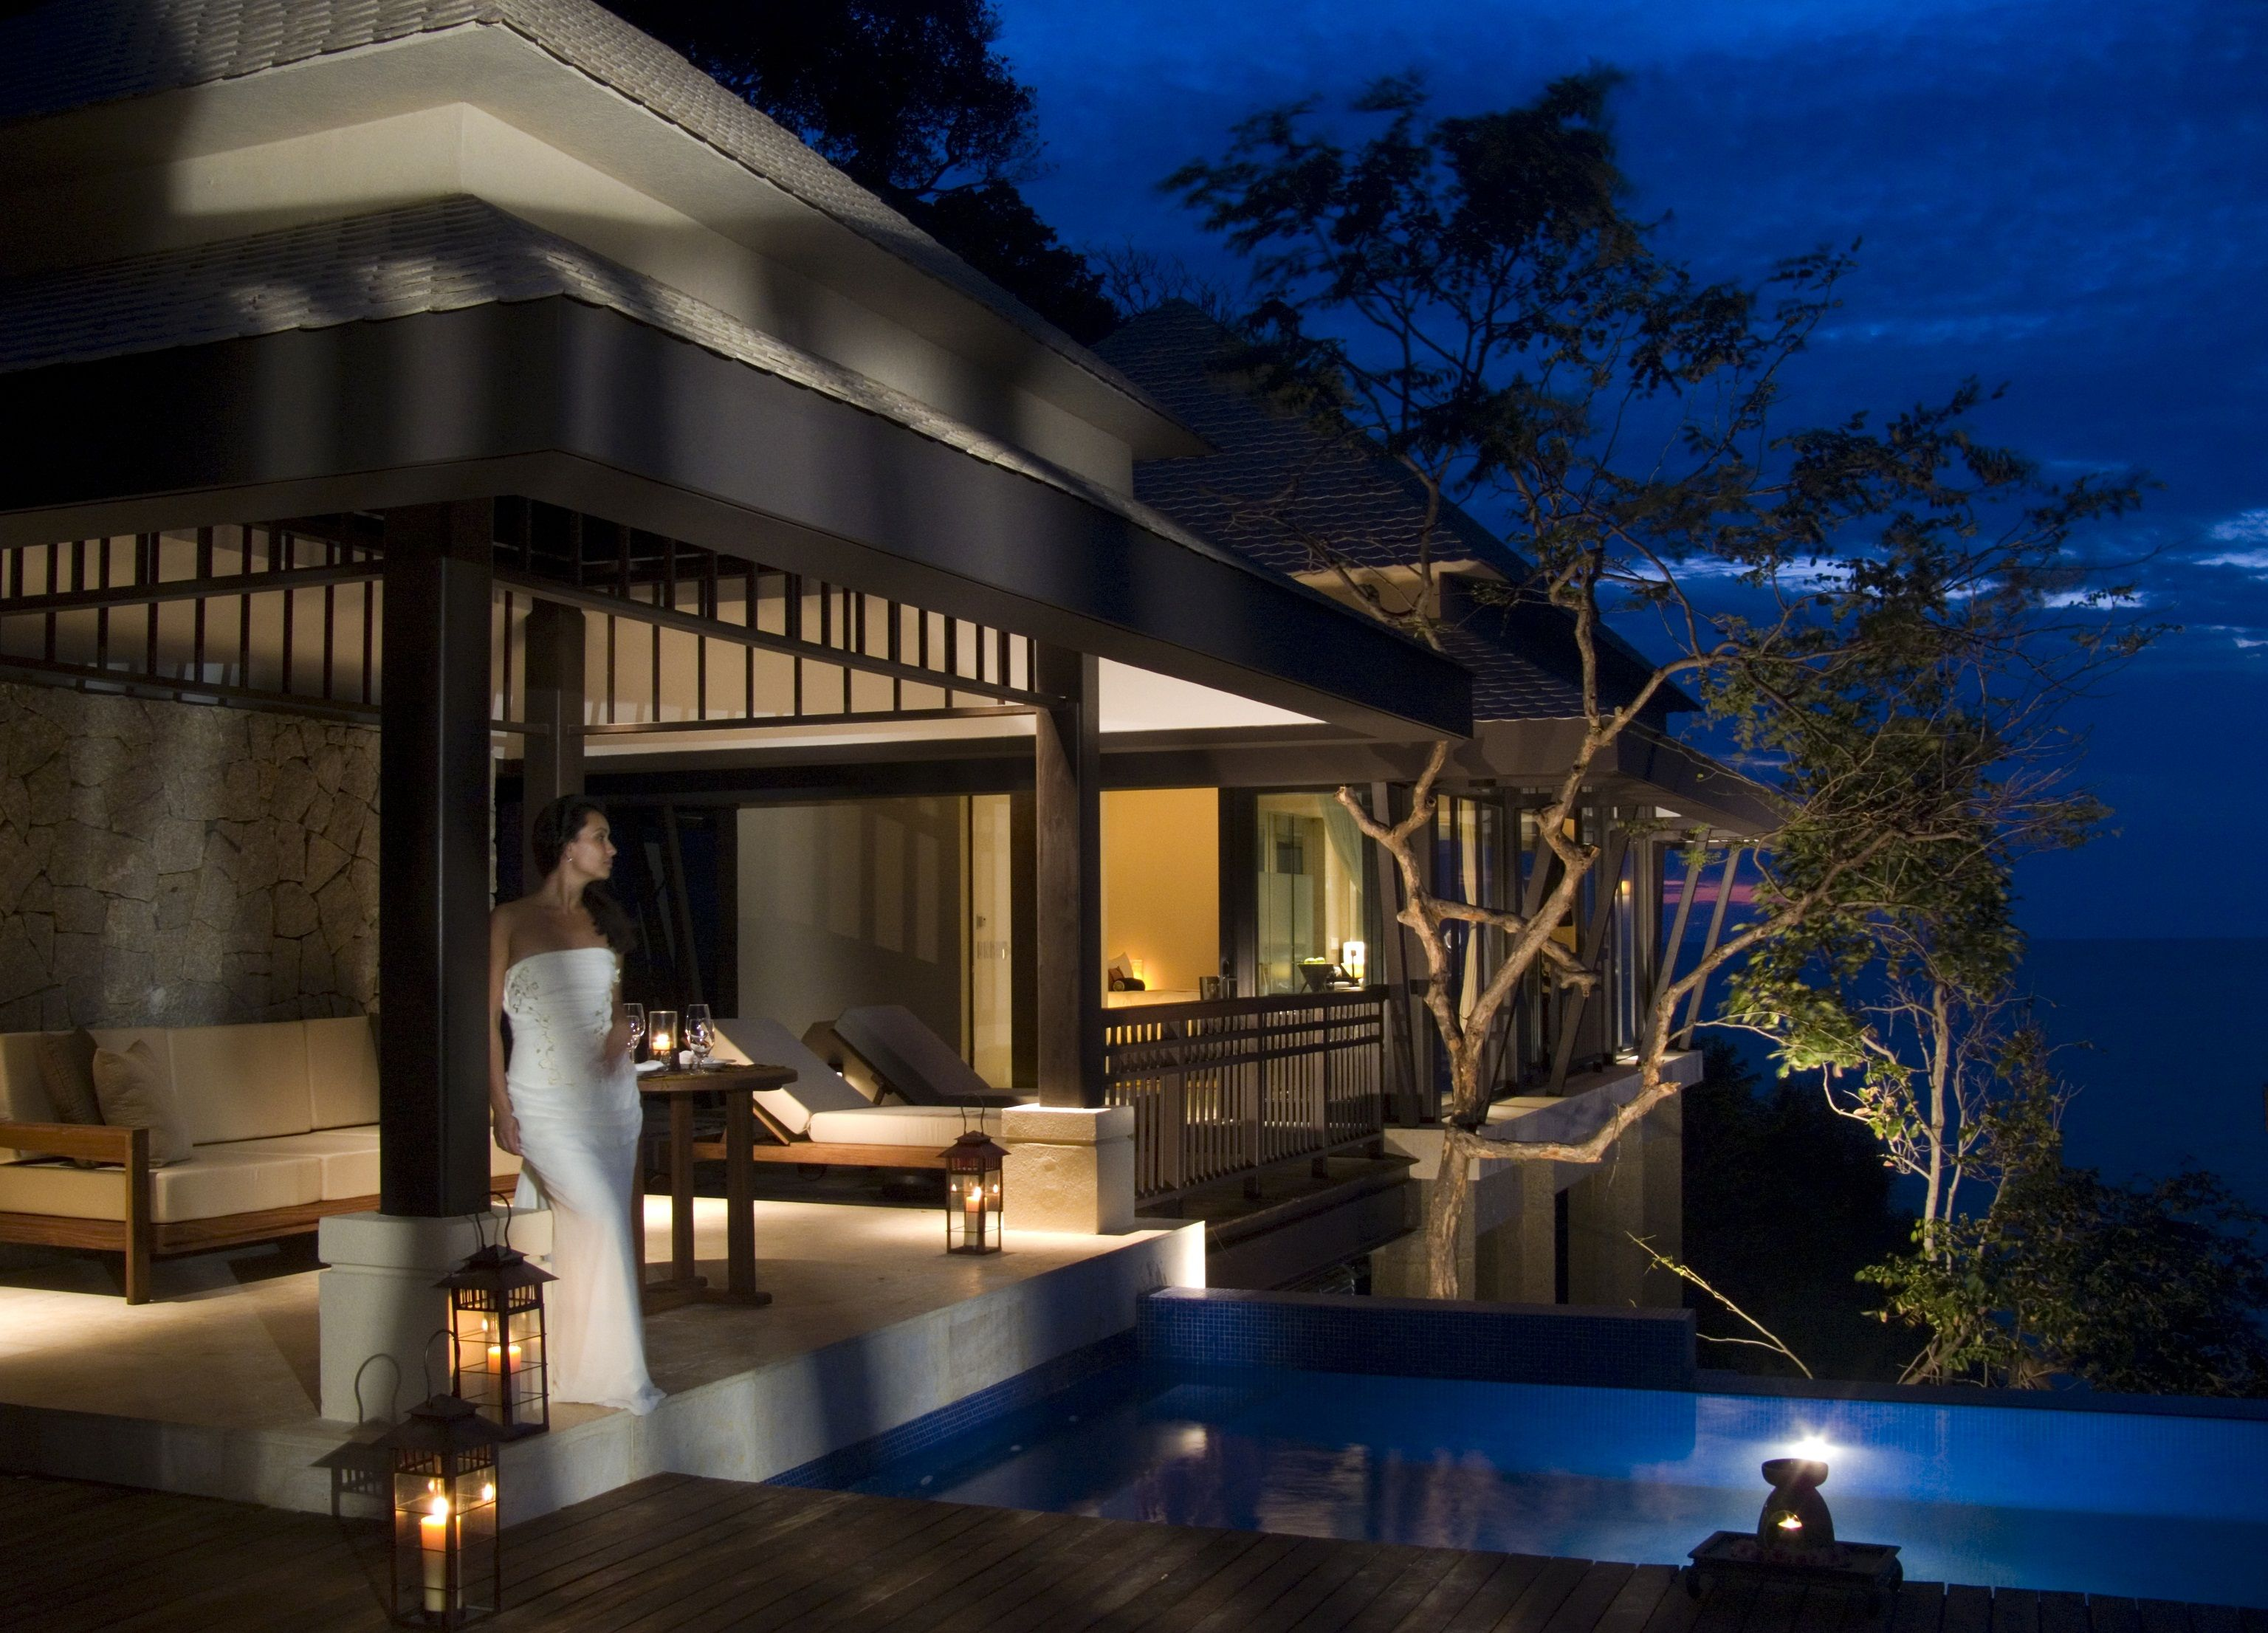 Banyan Tree Cabo Marques Acapulco Rediscover The Charm Romance And Dramatic Sunsets Of Mexico Vacationboutique Hotelscabohouse